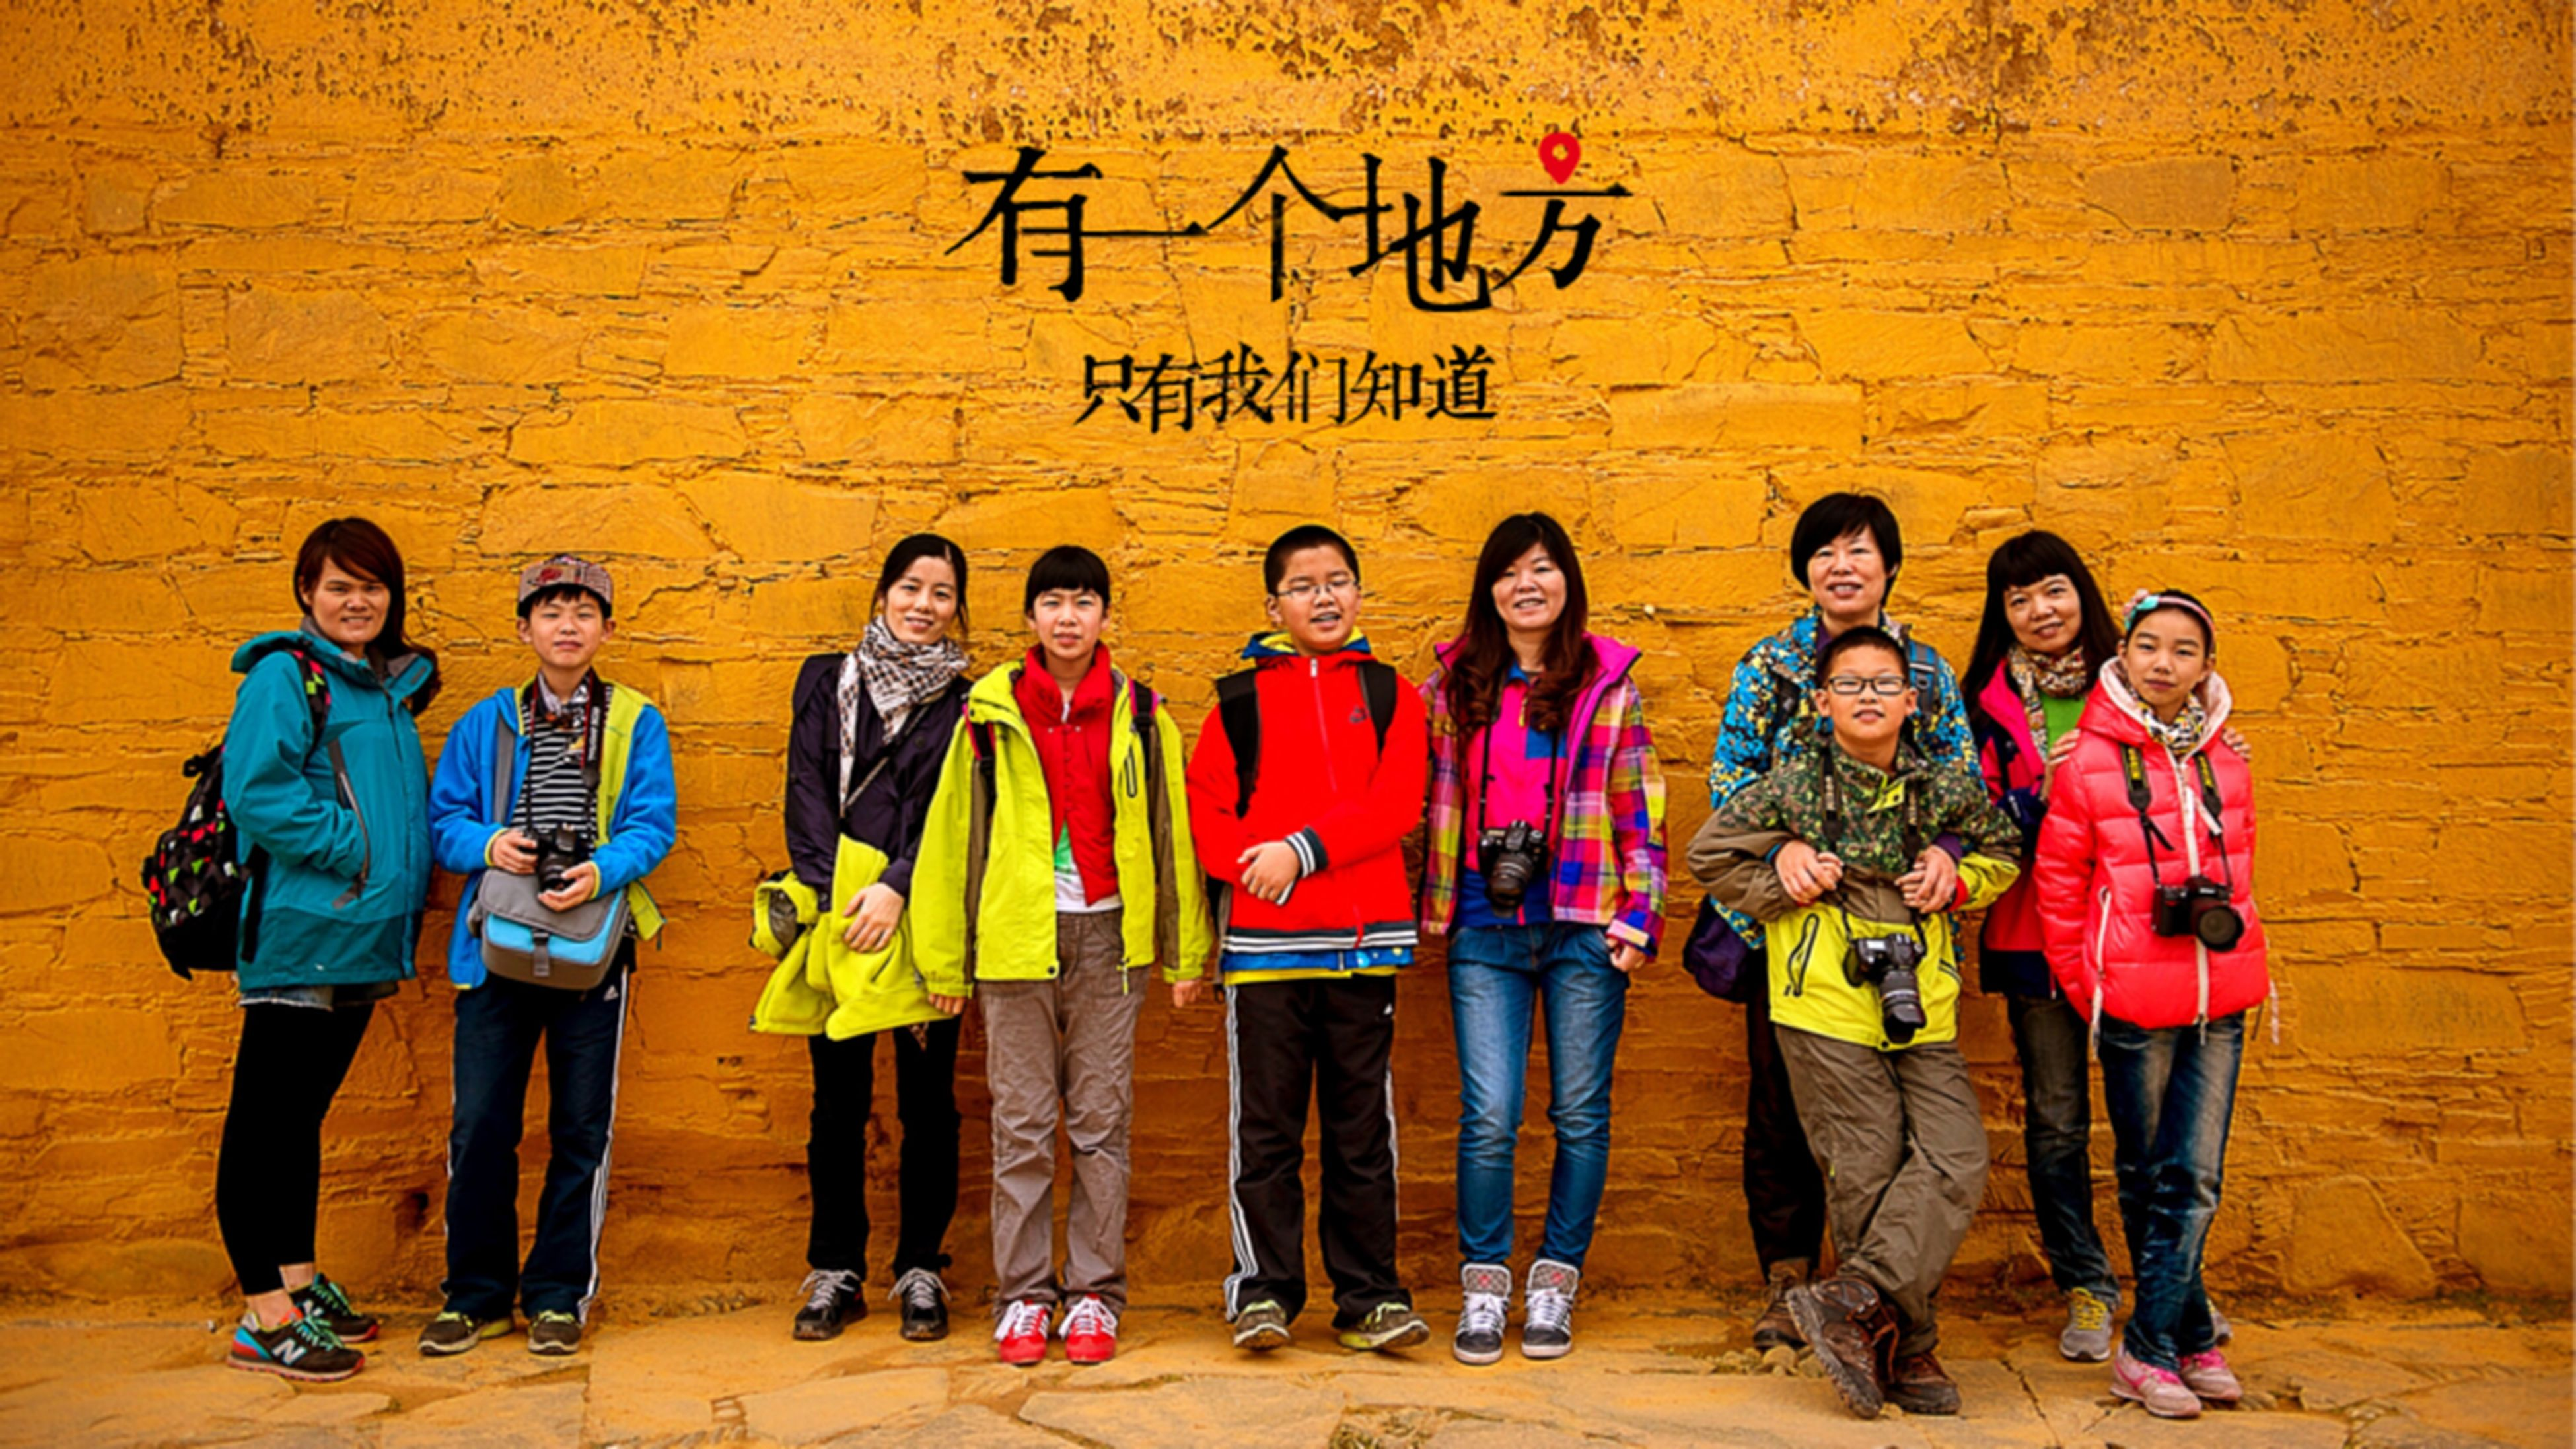 lifestyles, men, person, standing, casual clothing, traditional clothing, full length, wall - building feature, graffiti, togetherness, leisure activity, text, large group of people, multi colored, walking, street, cultures, non-western script, love